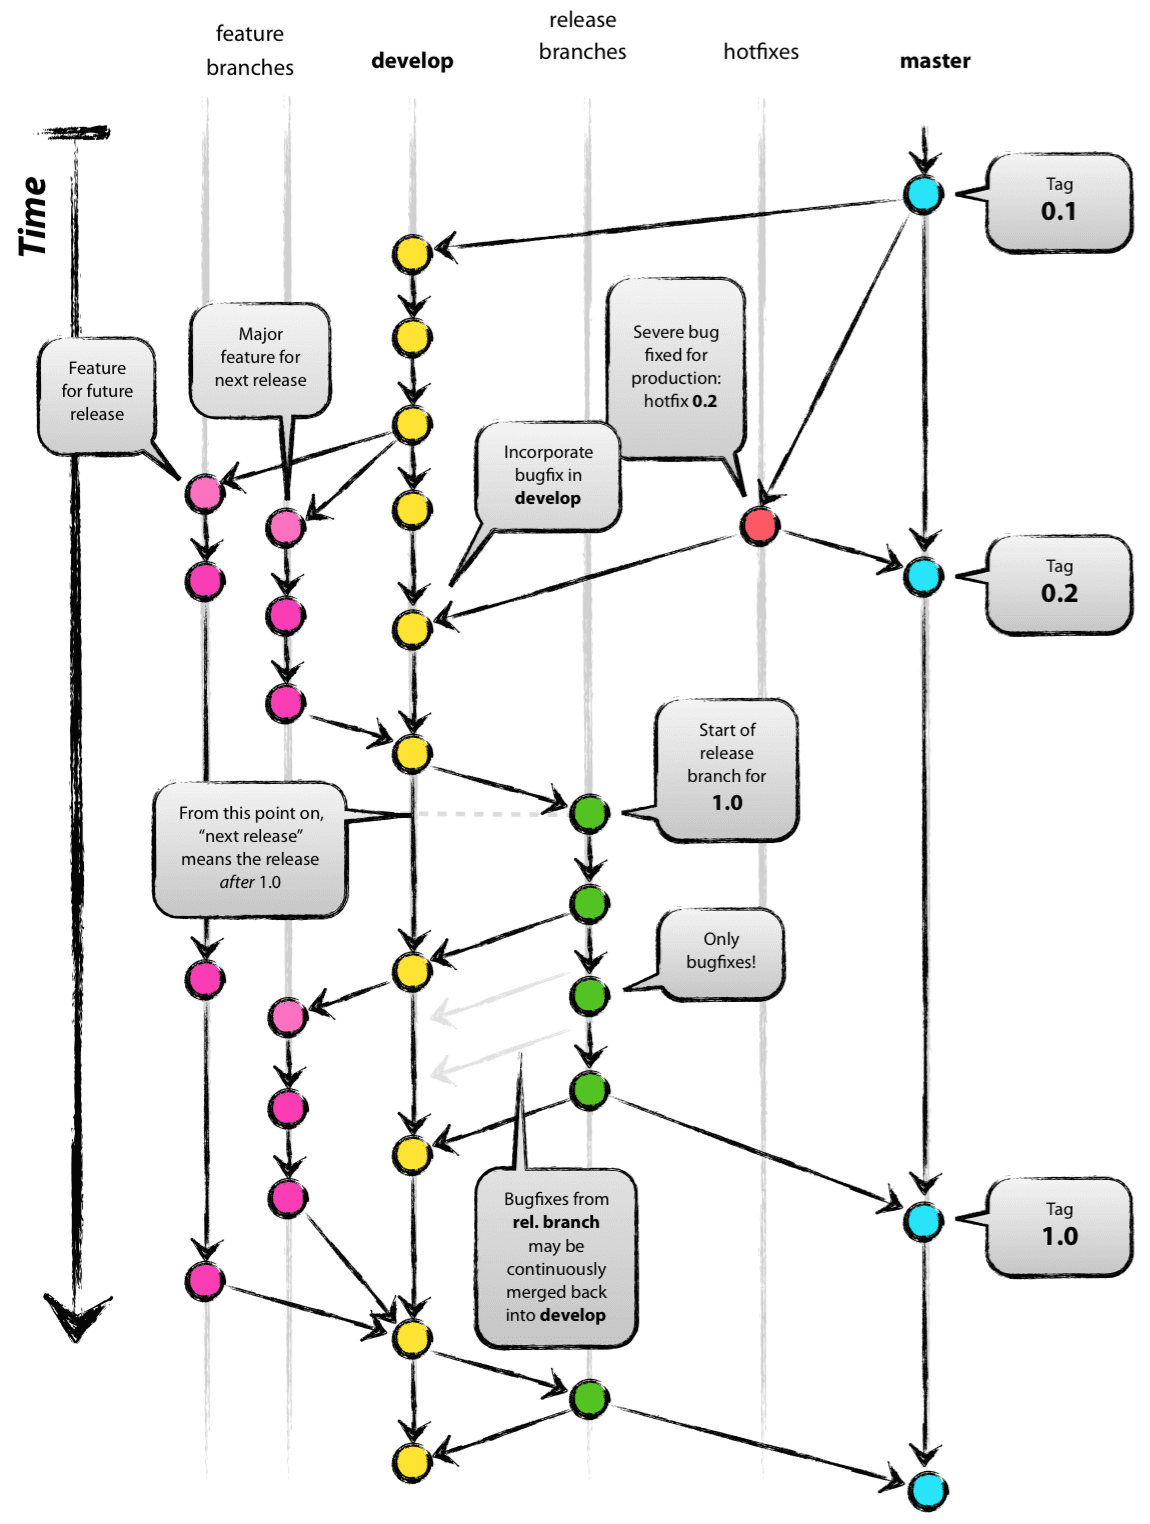 Git Flow Diagram - taken from Vincent Driessen's blog. http://nvie.com/posts/a-successful-git-branching-model/